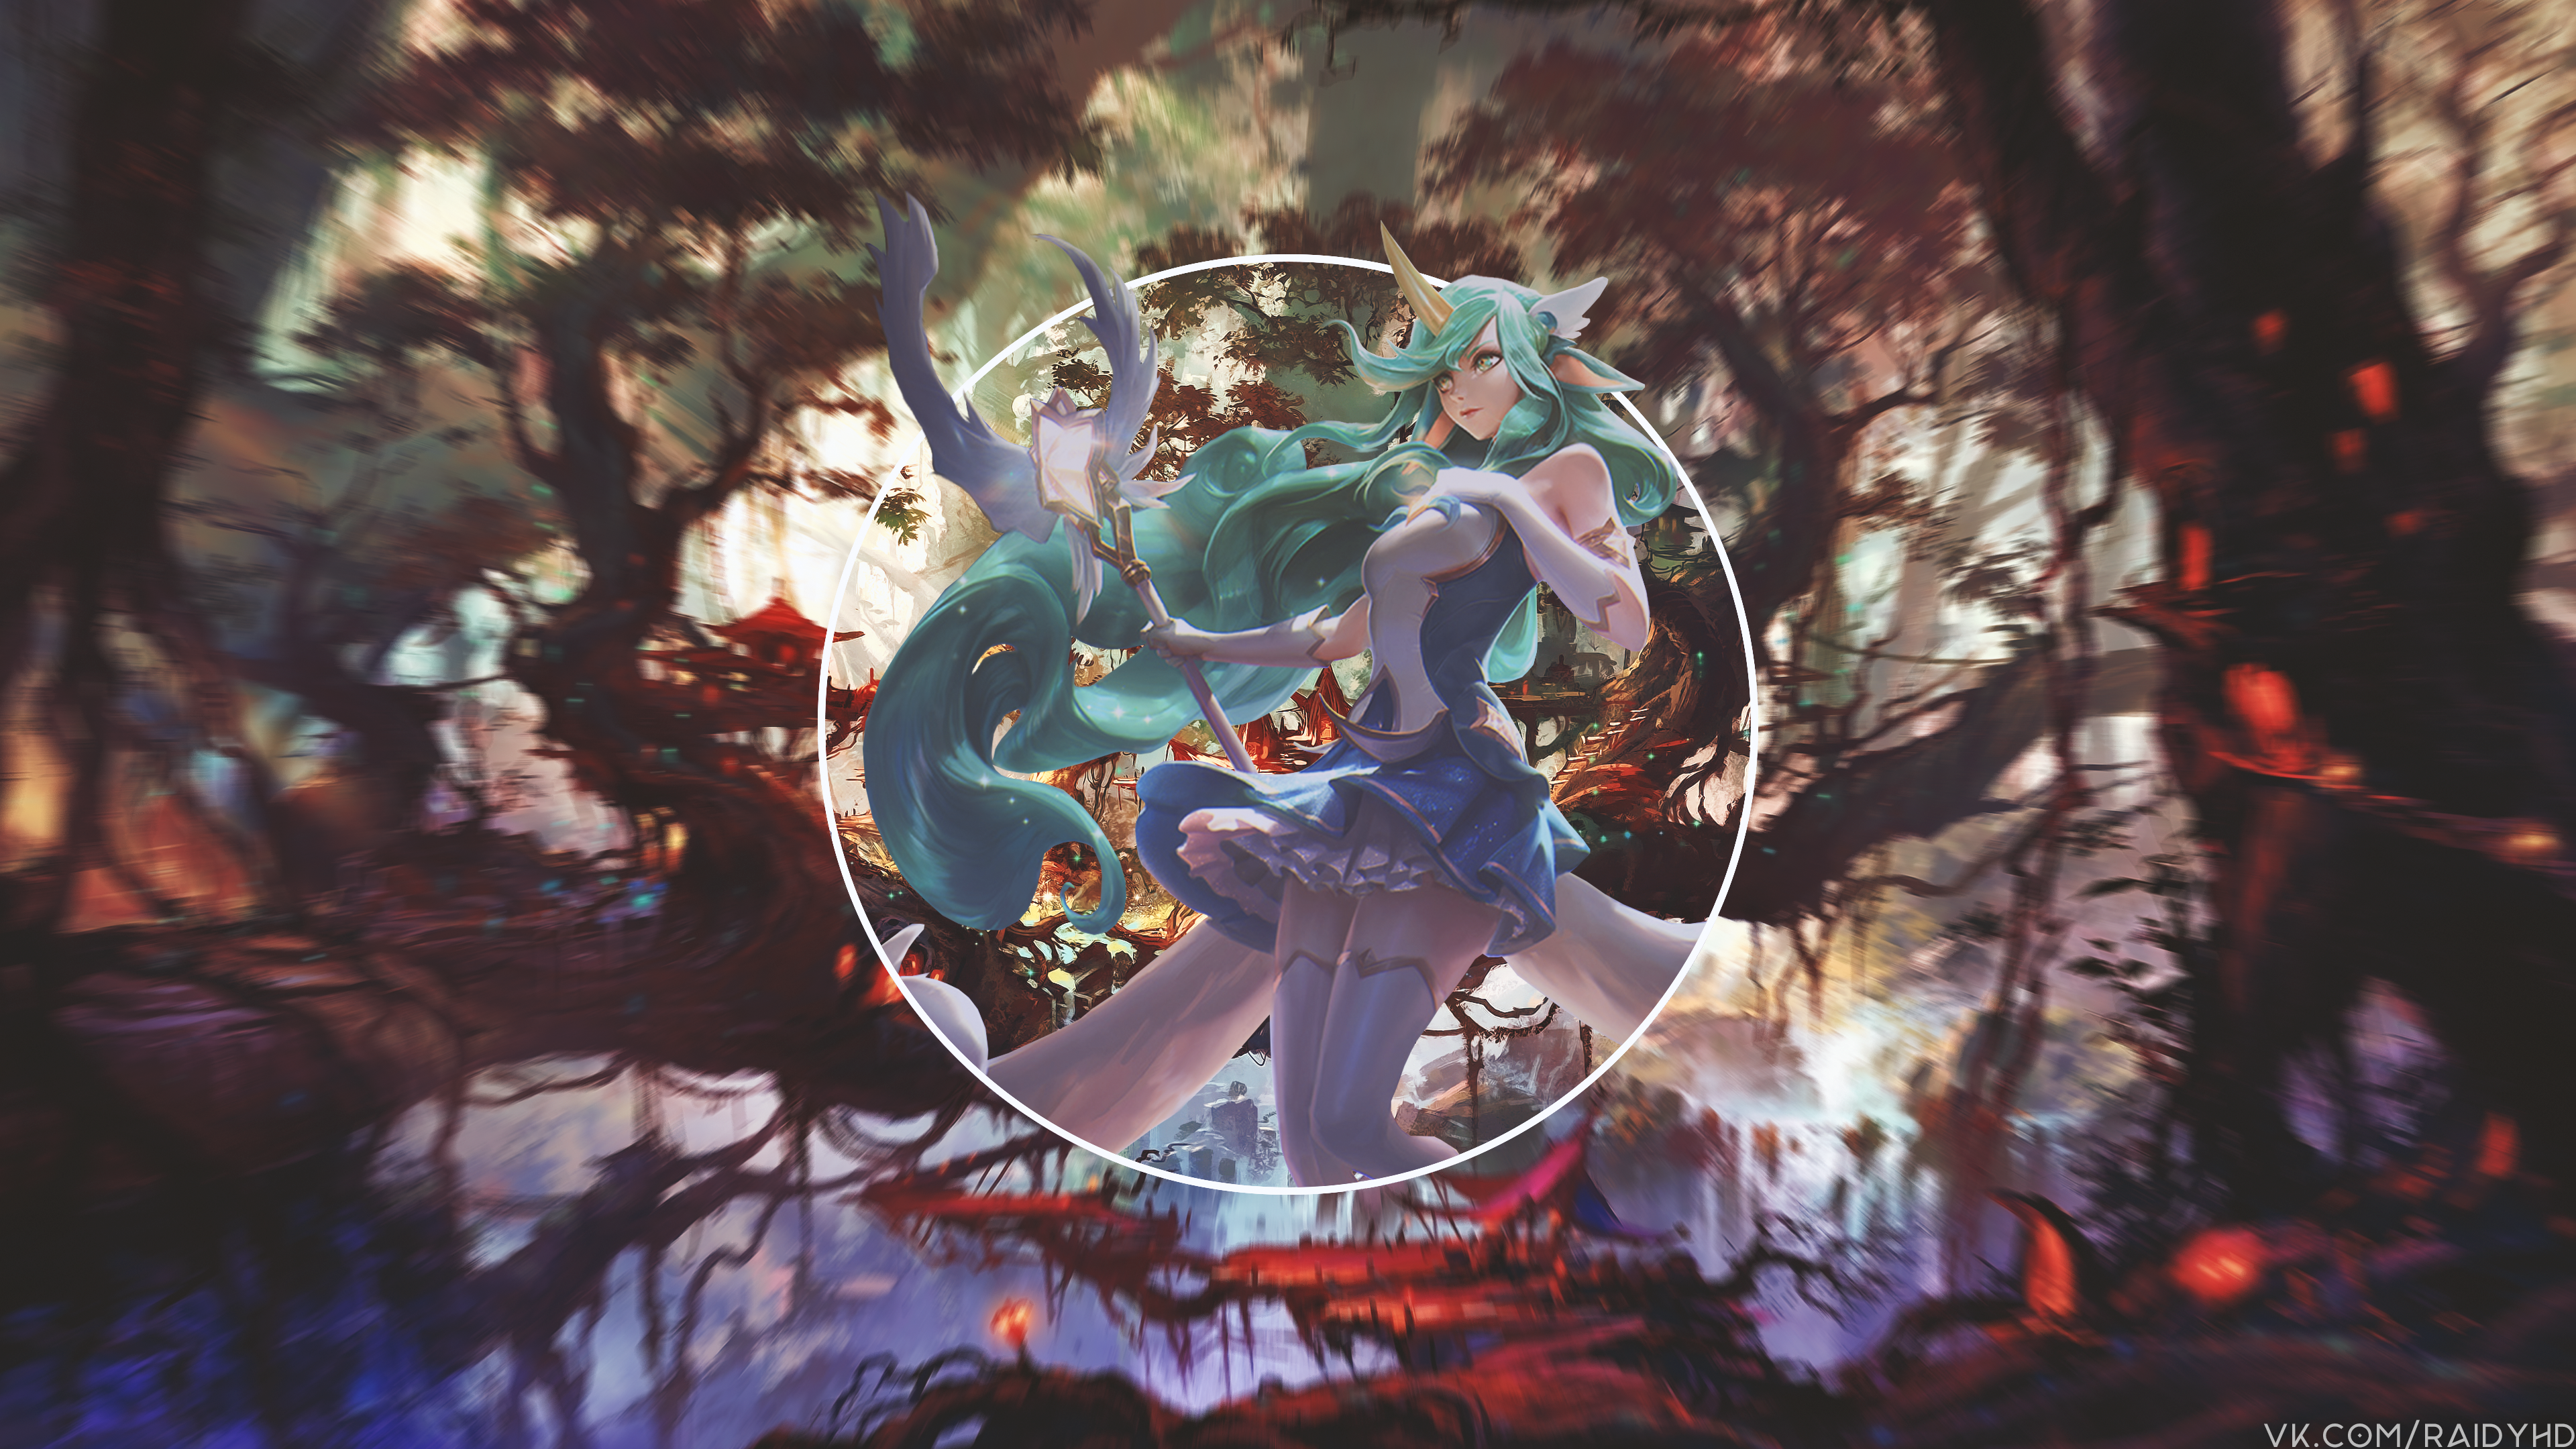 Anime 3840x2160 anime anime girls picture-in-picture League of Legends Soraka (League of Legends)